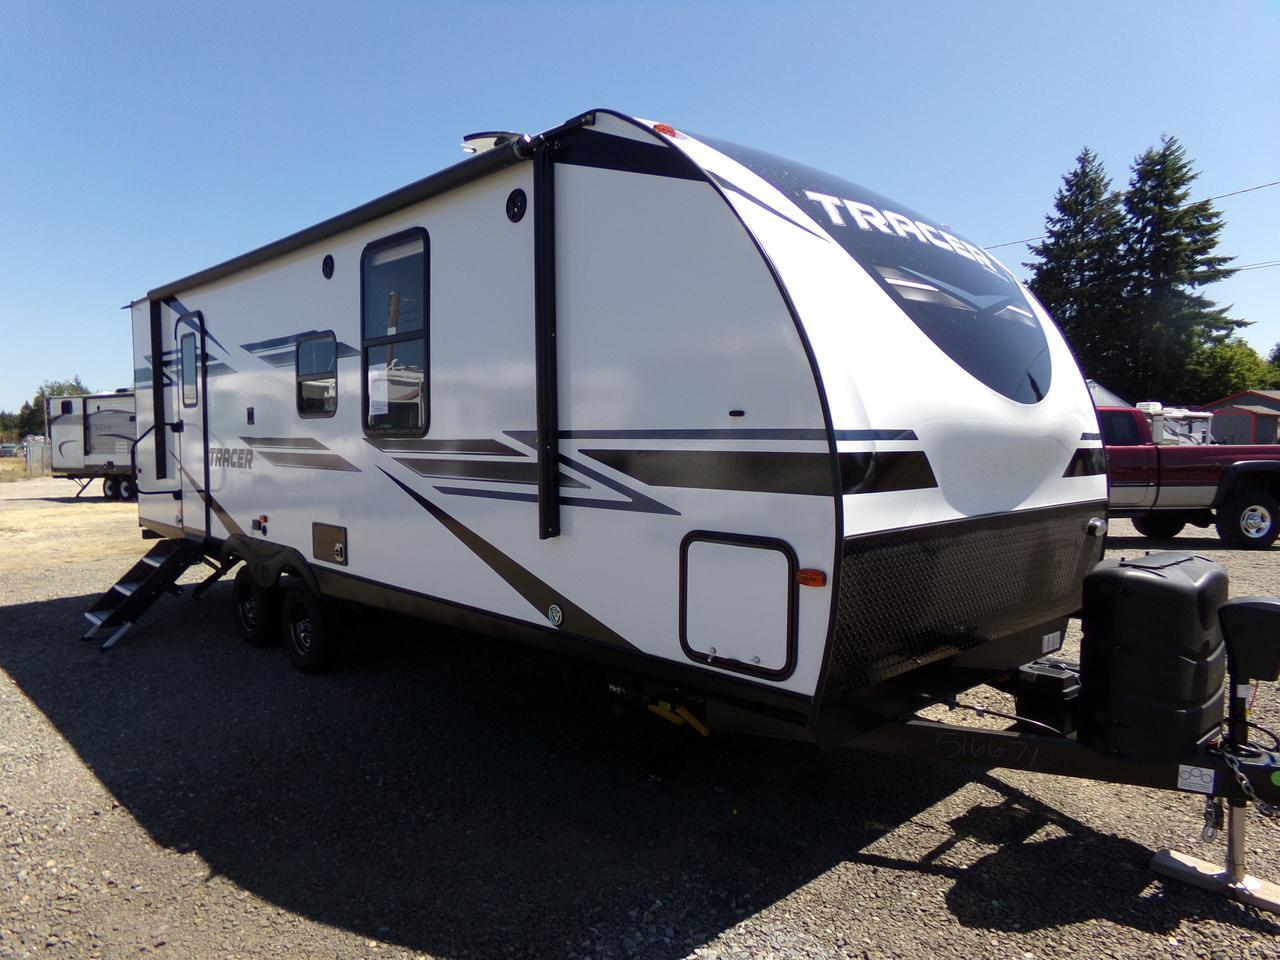 2020 PRIMETIME TRACER 260KS TRAVEL TRAILER Olympia WA